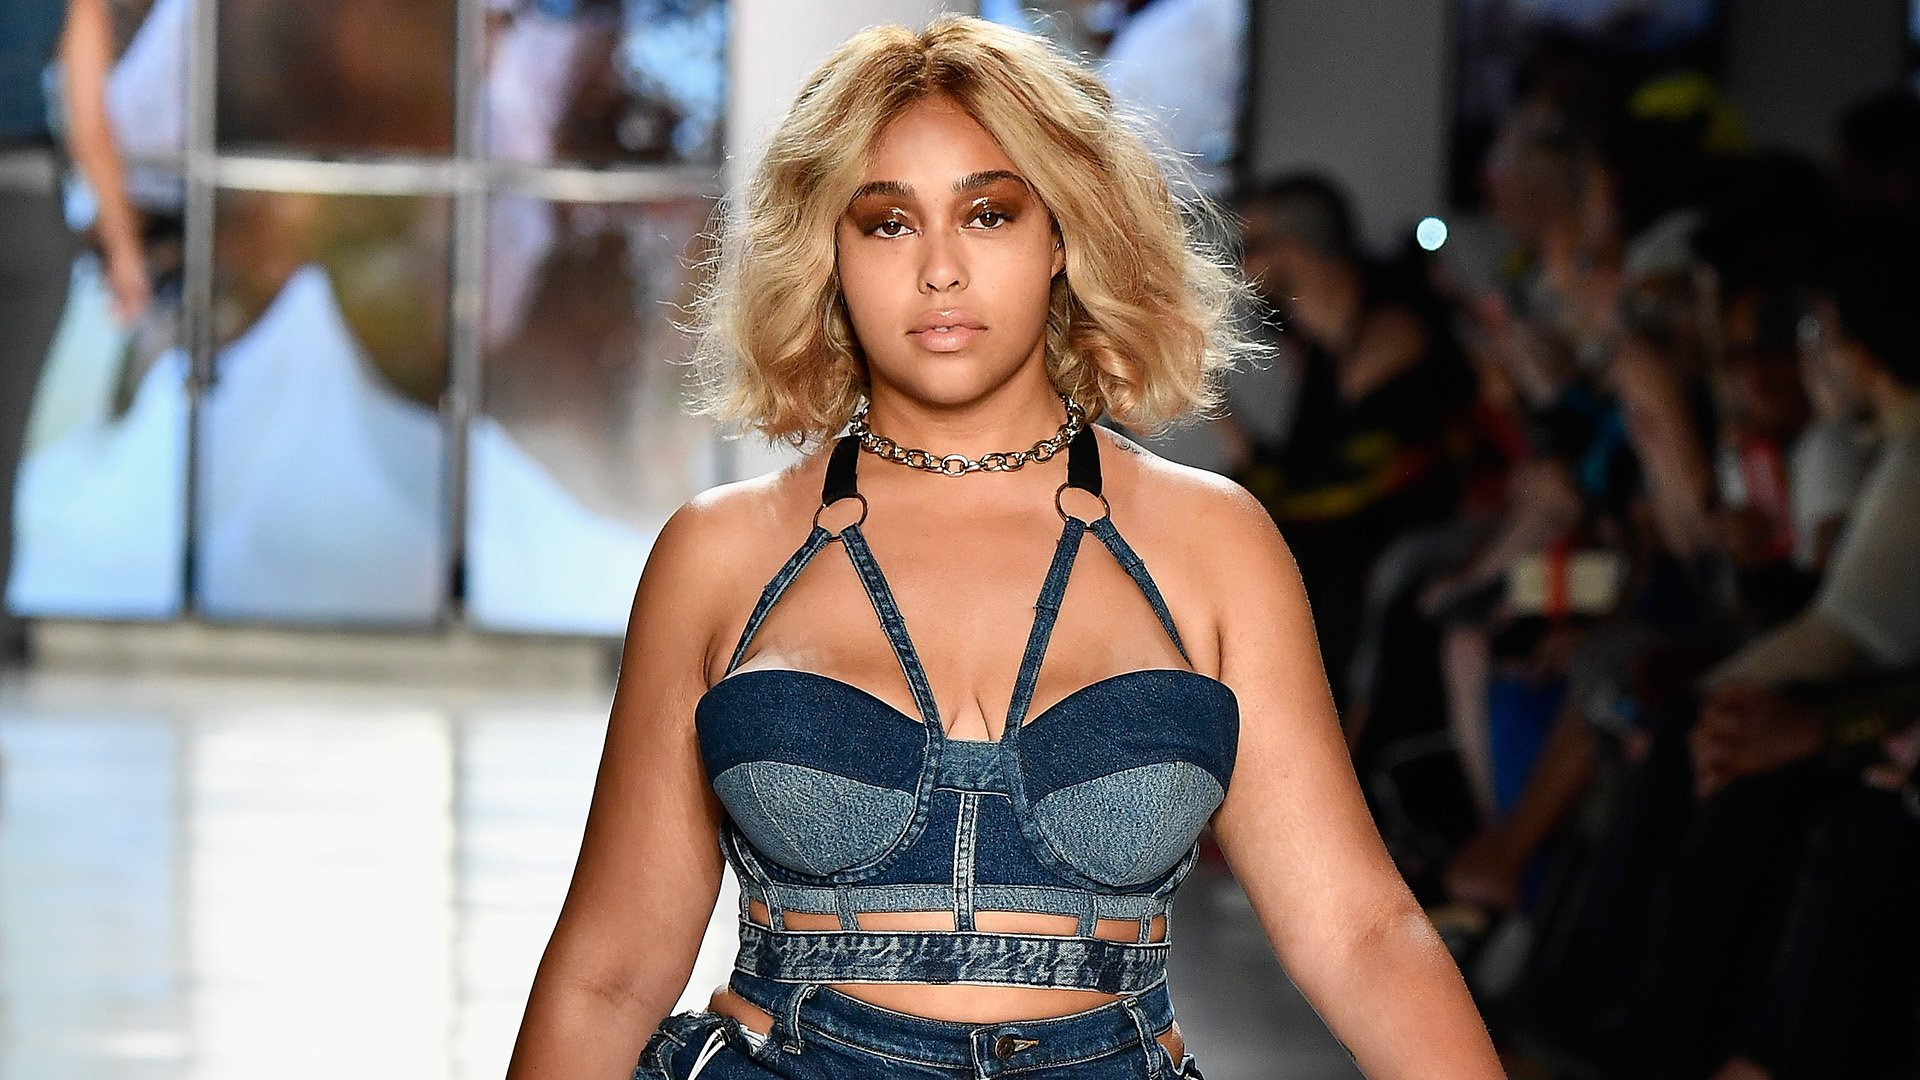 Jordyn Woods Announces A Hilarious Comedy On BET – Check Out Her Message